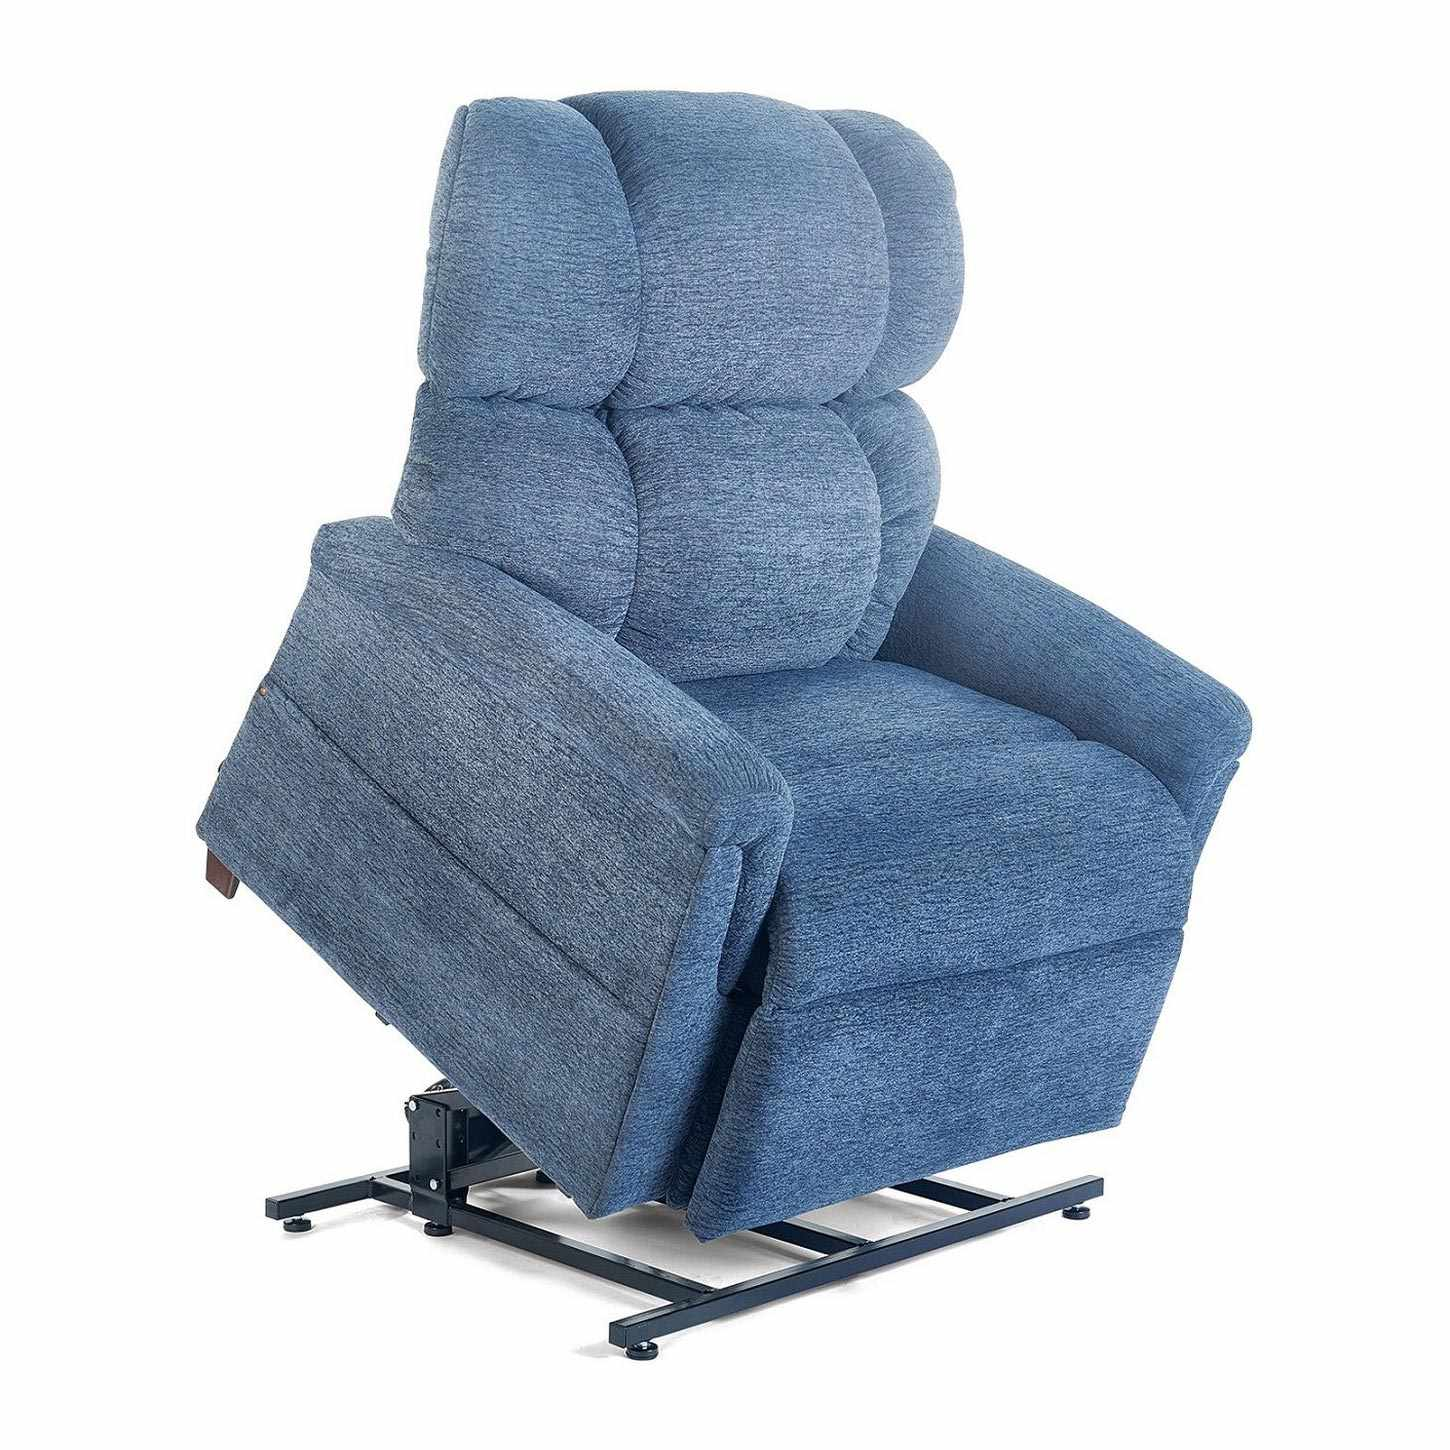 GoldenTech MaxiComforter PR535 Lift Chair | Medicaleshop